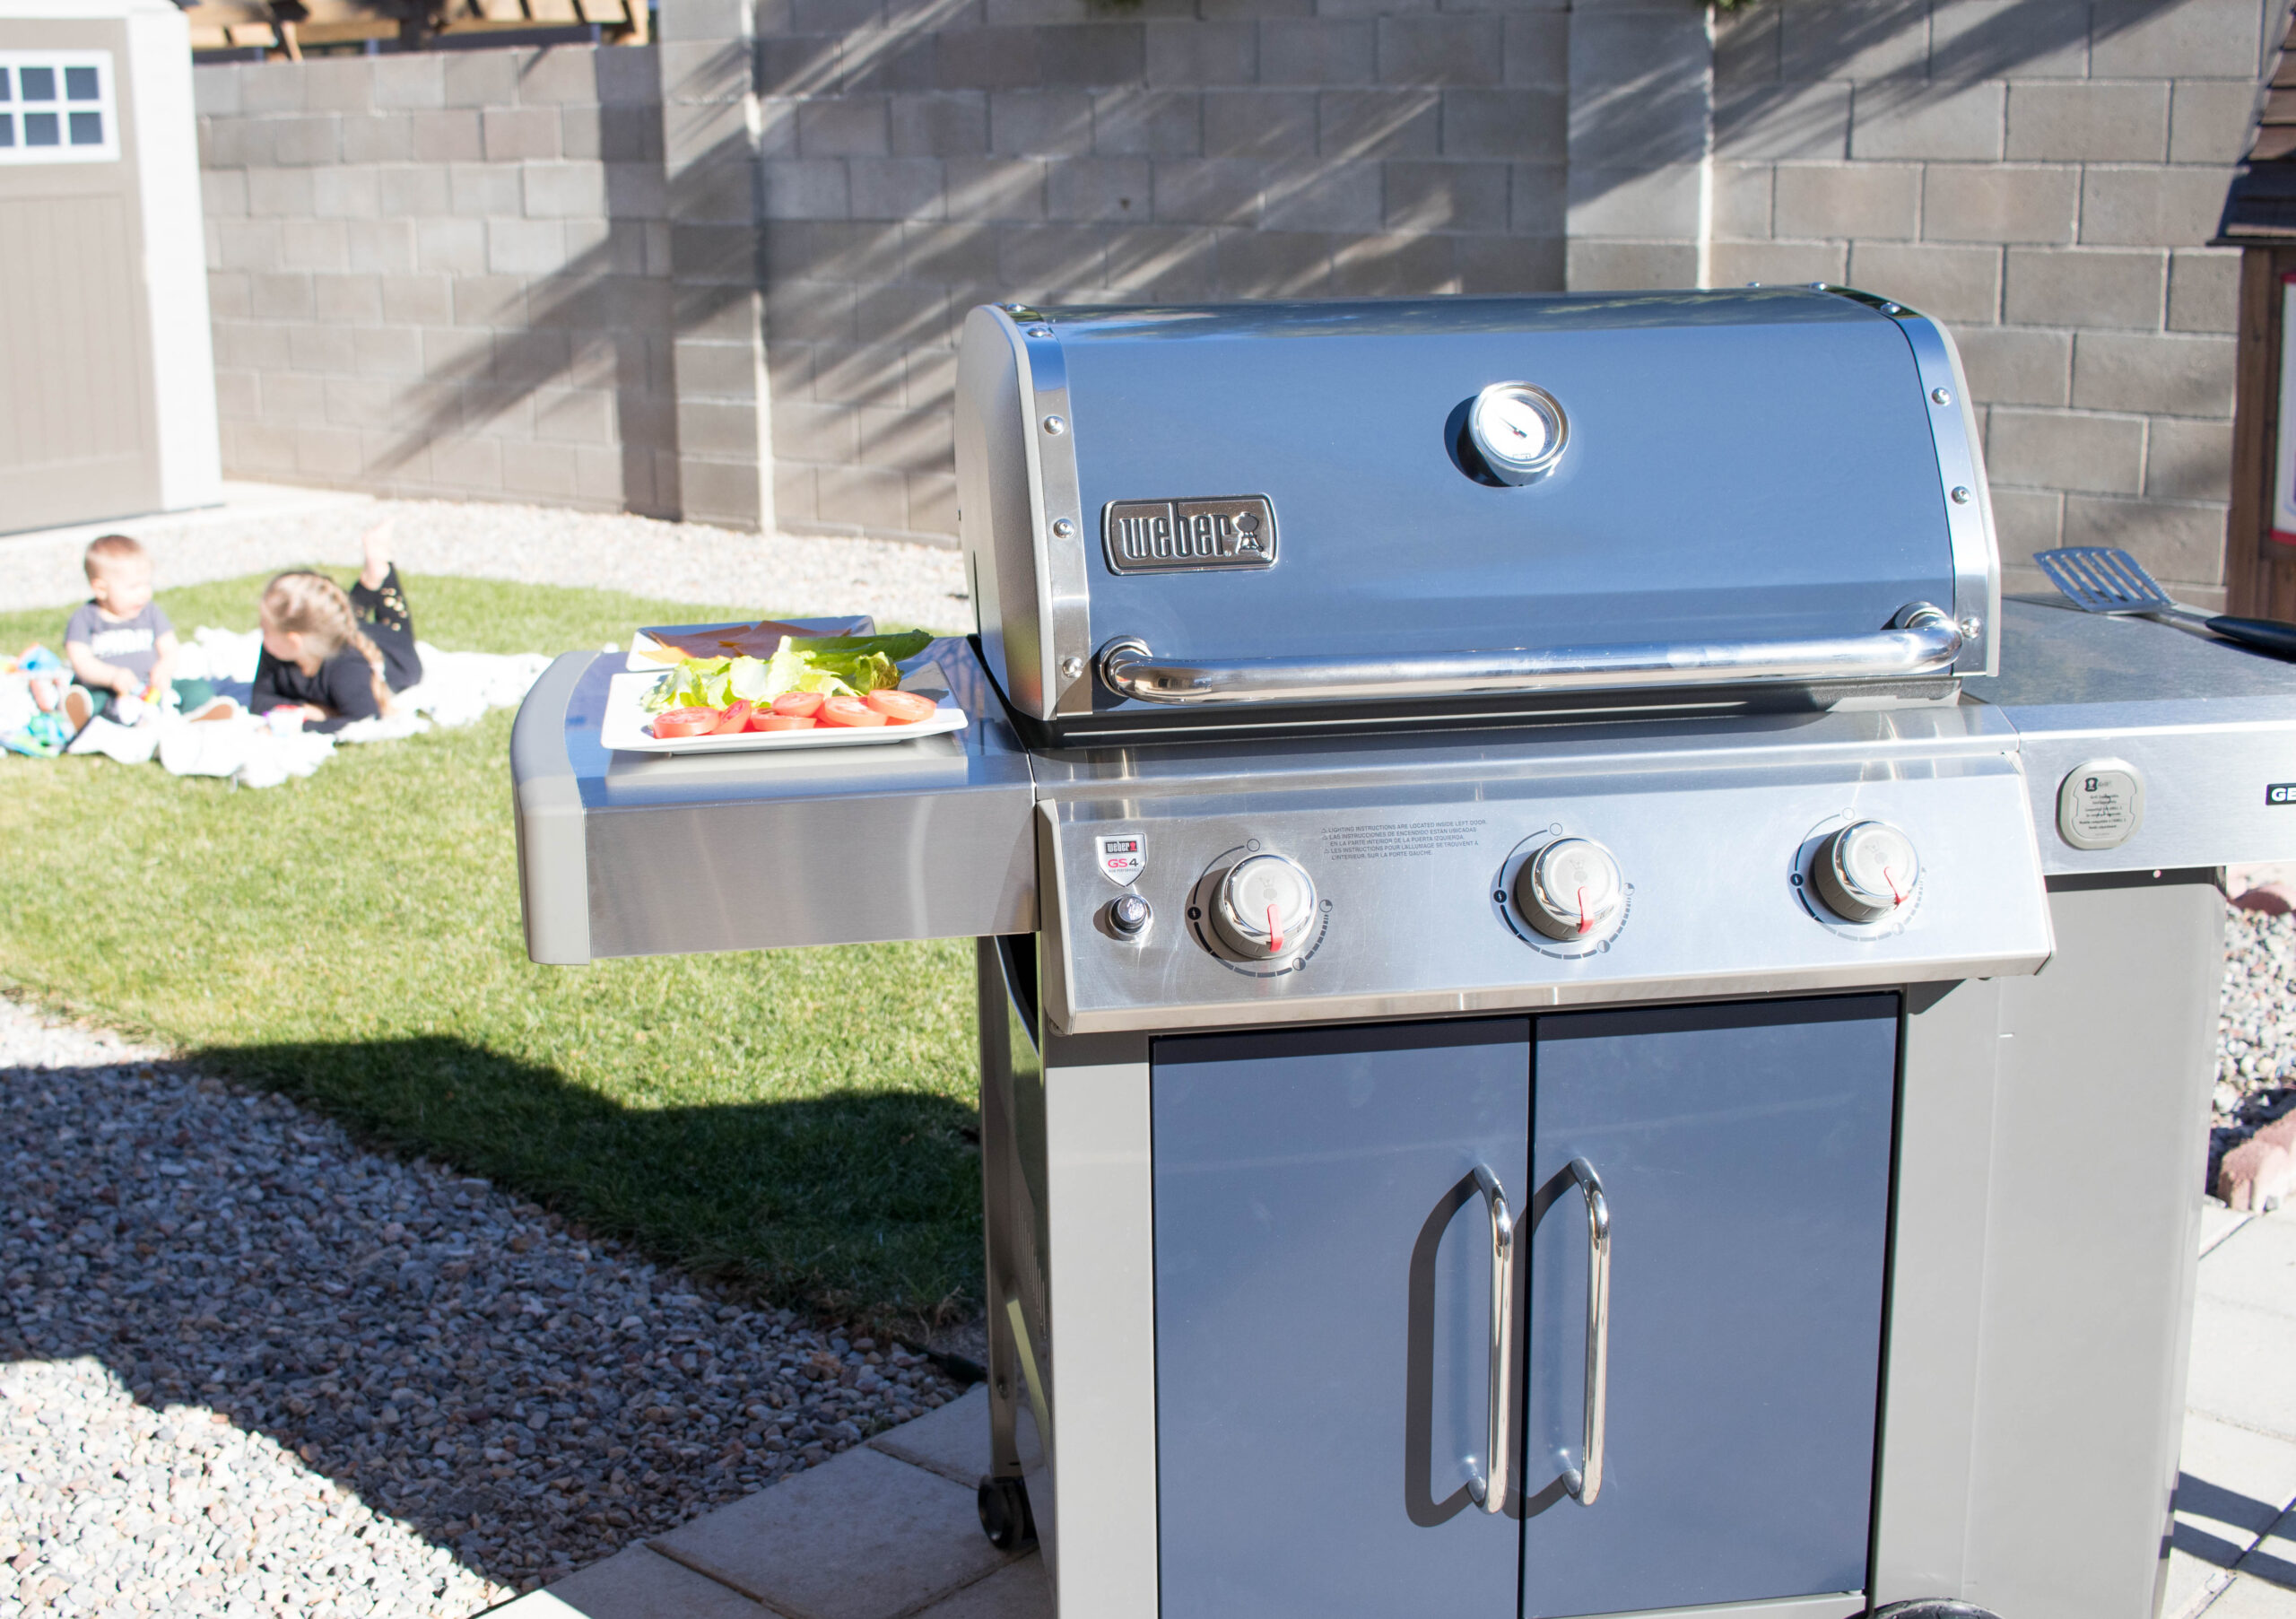 weber grill from ace hardware #mylocalace #acehardware #webergrills